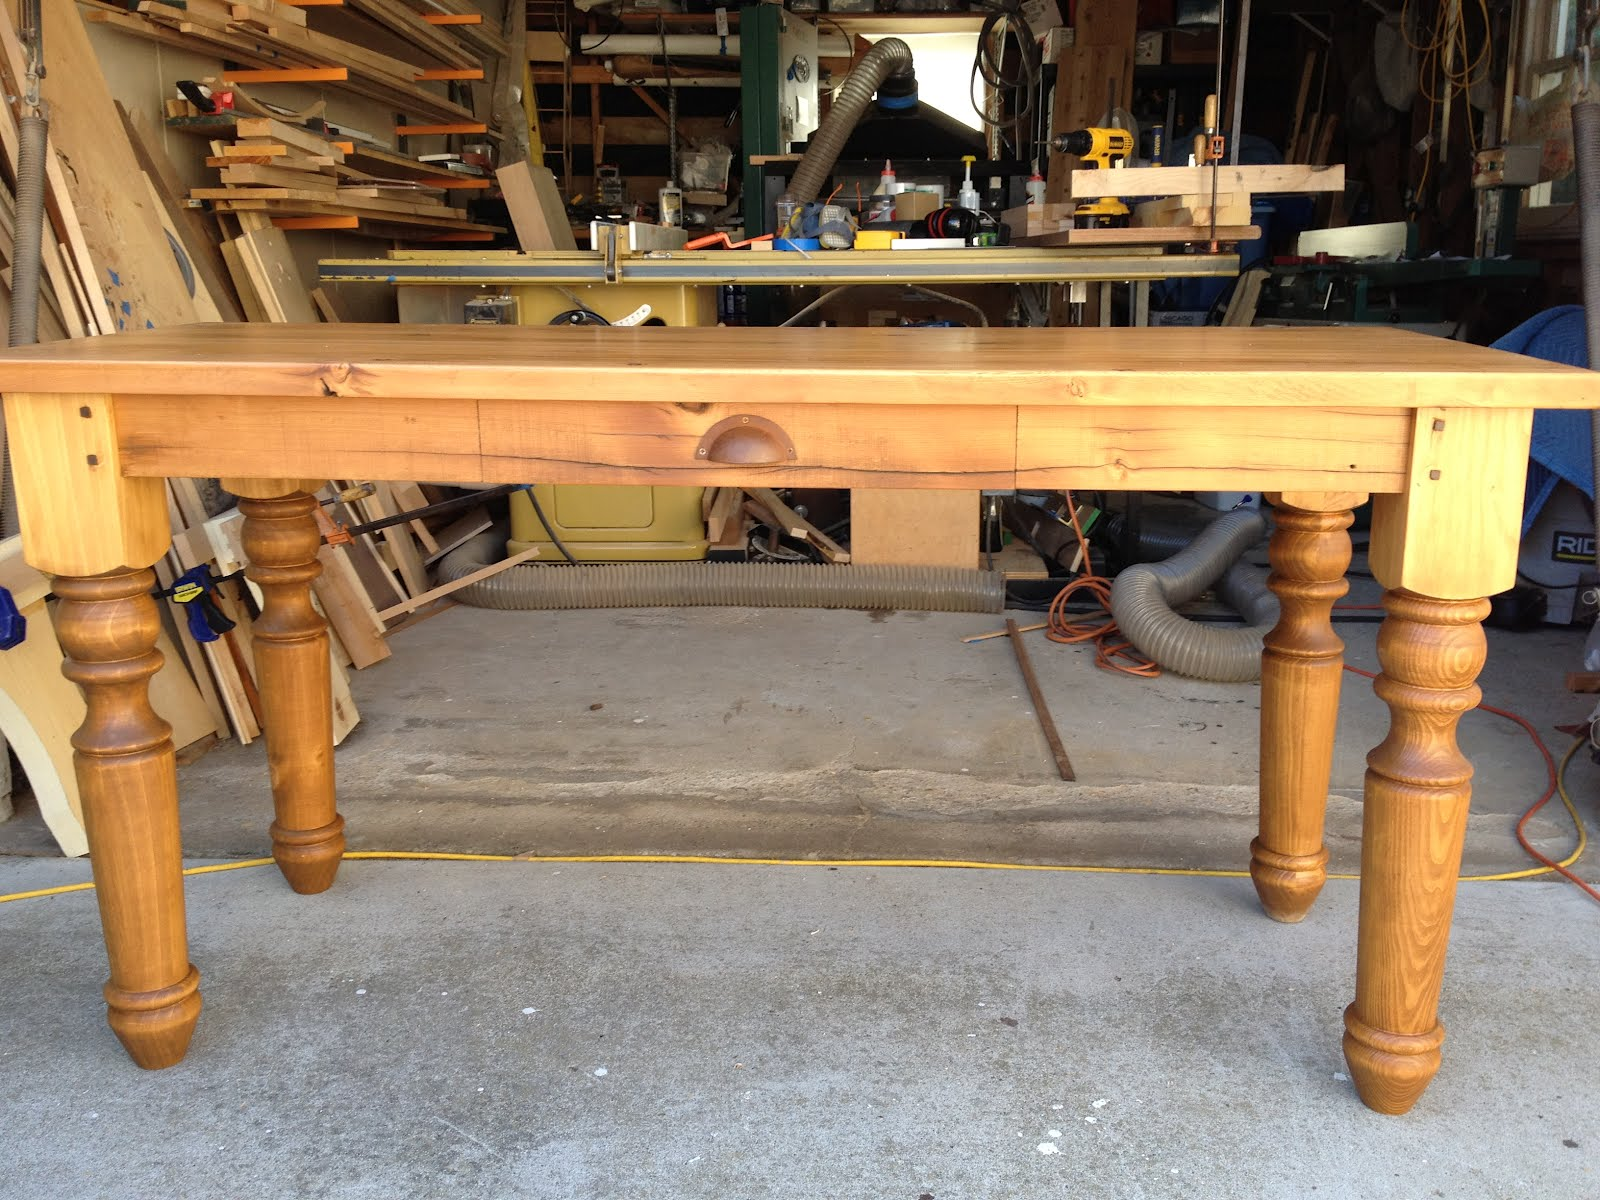 Adele Farm Desk  Farmhouse Table Company. Work Table Height. Table Cover Roll. Antique Writing Desk With Drawers. Drawer Faces. Edwardian Roll Top Desk. Treadmill Desk Base. Occasional Table Sets. Table Decor